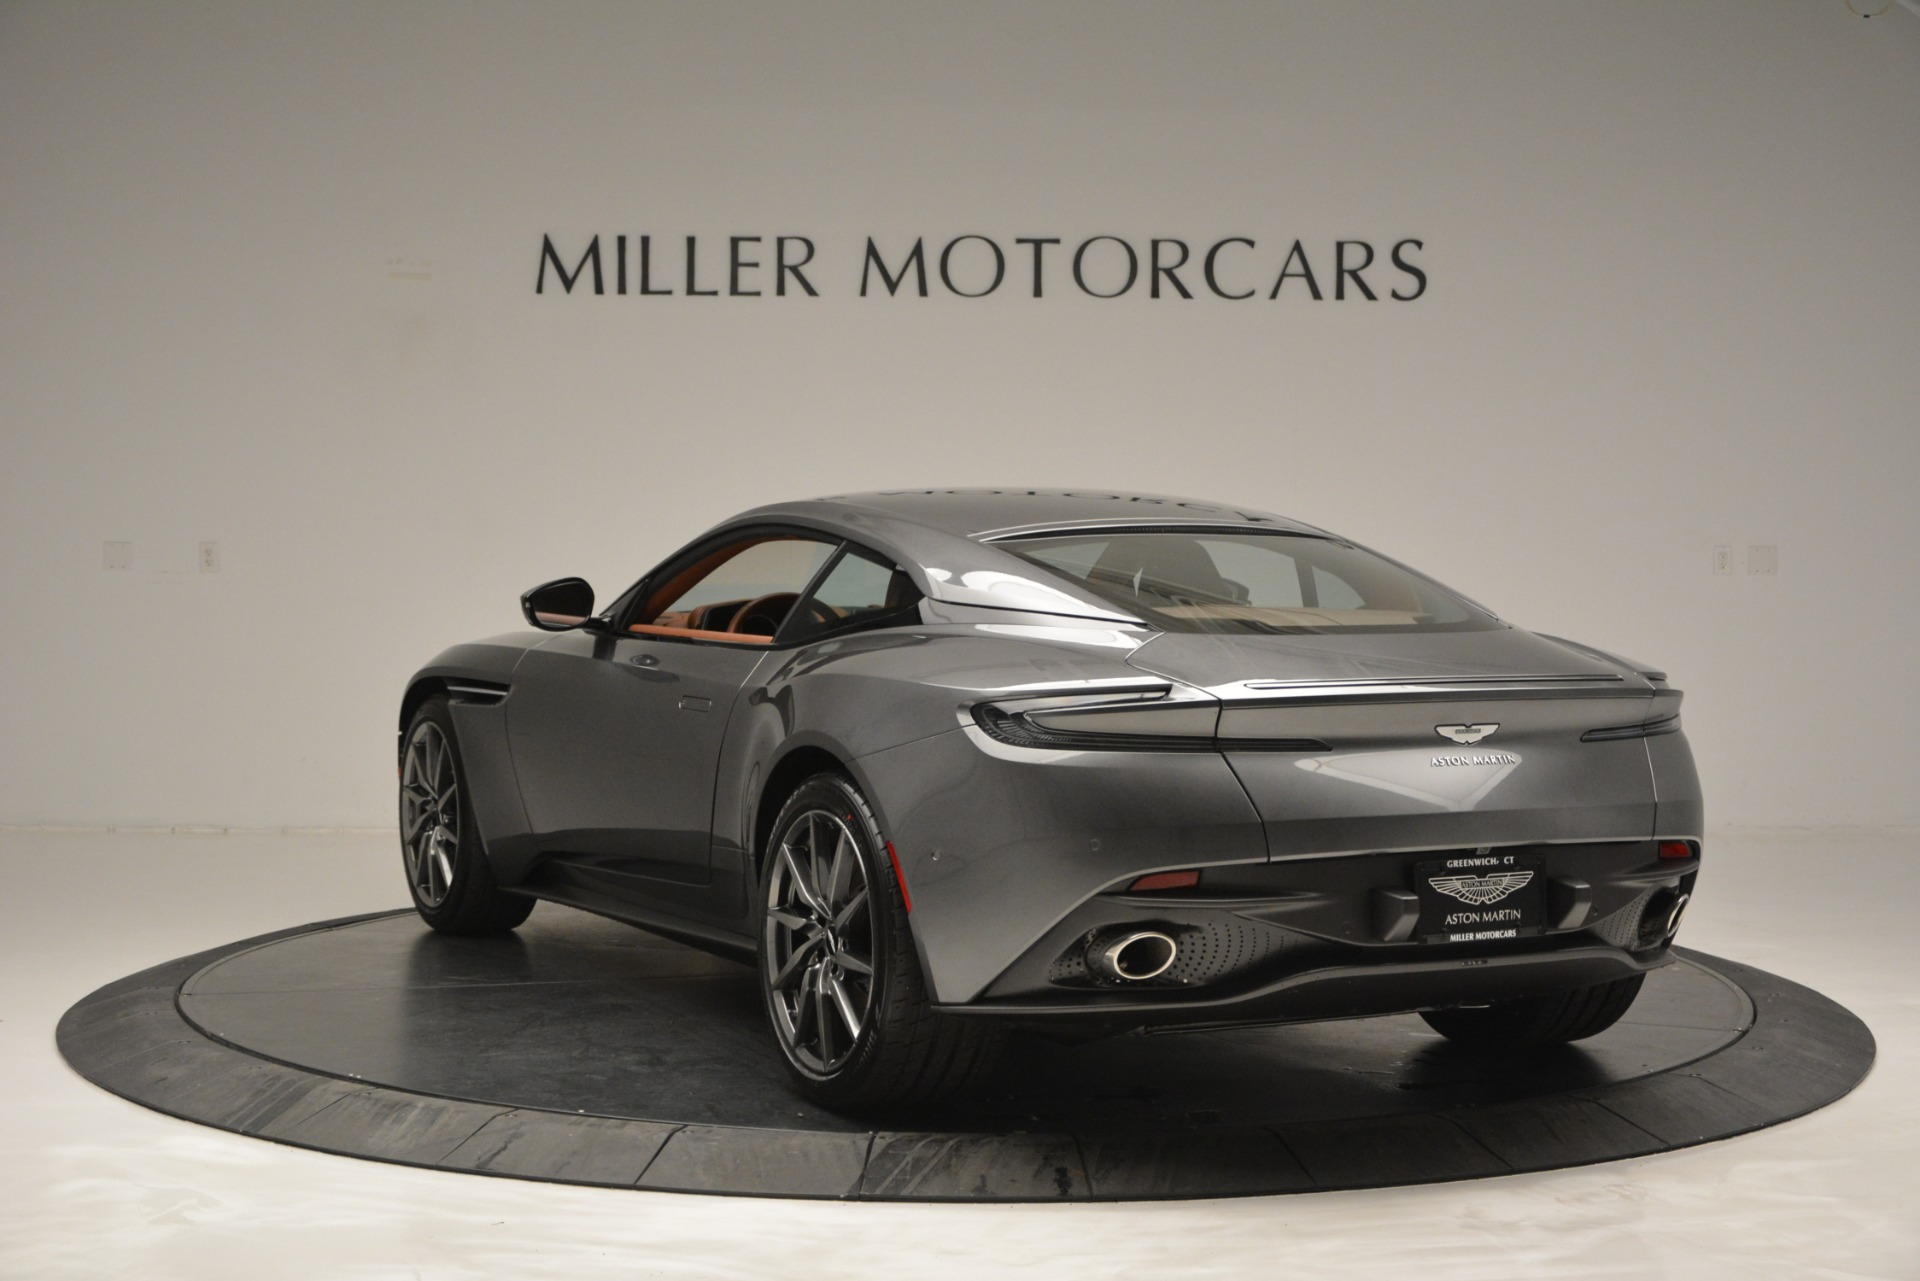 New 2019 Aston Martin DB11 V8 Coupe For Sale In Westport, CT 3134_p5